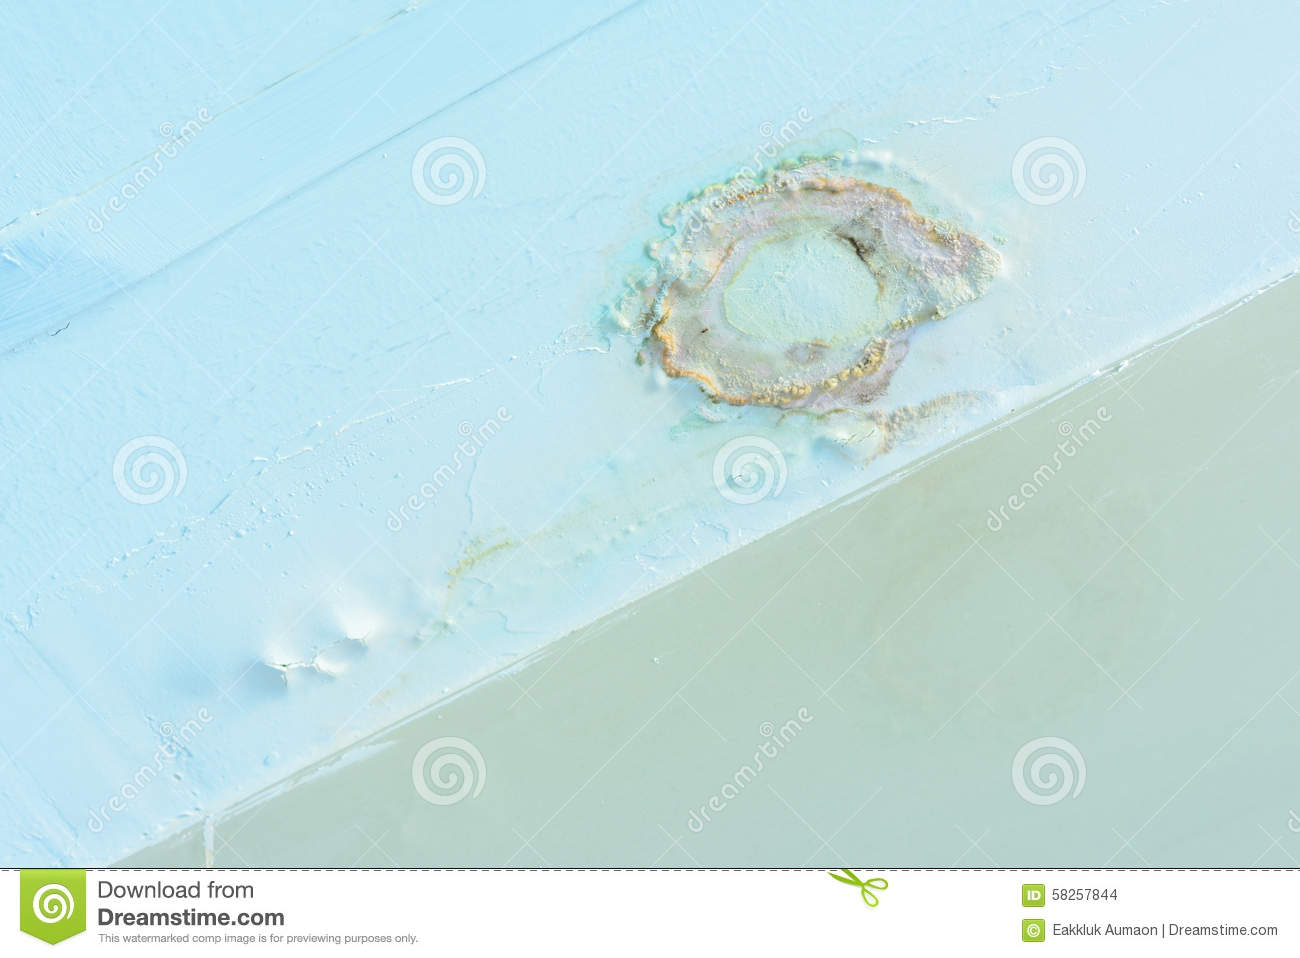 Water Leak In Bathroom Ceiling Stock Photo - Image of wall, mould ...